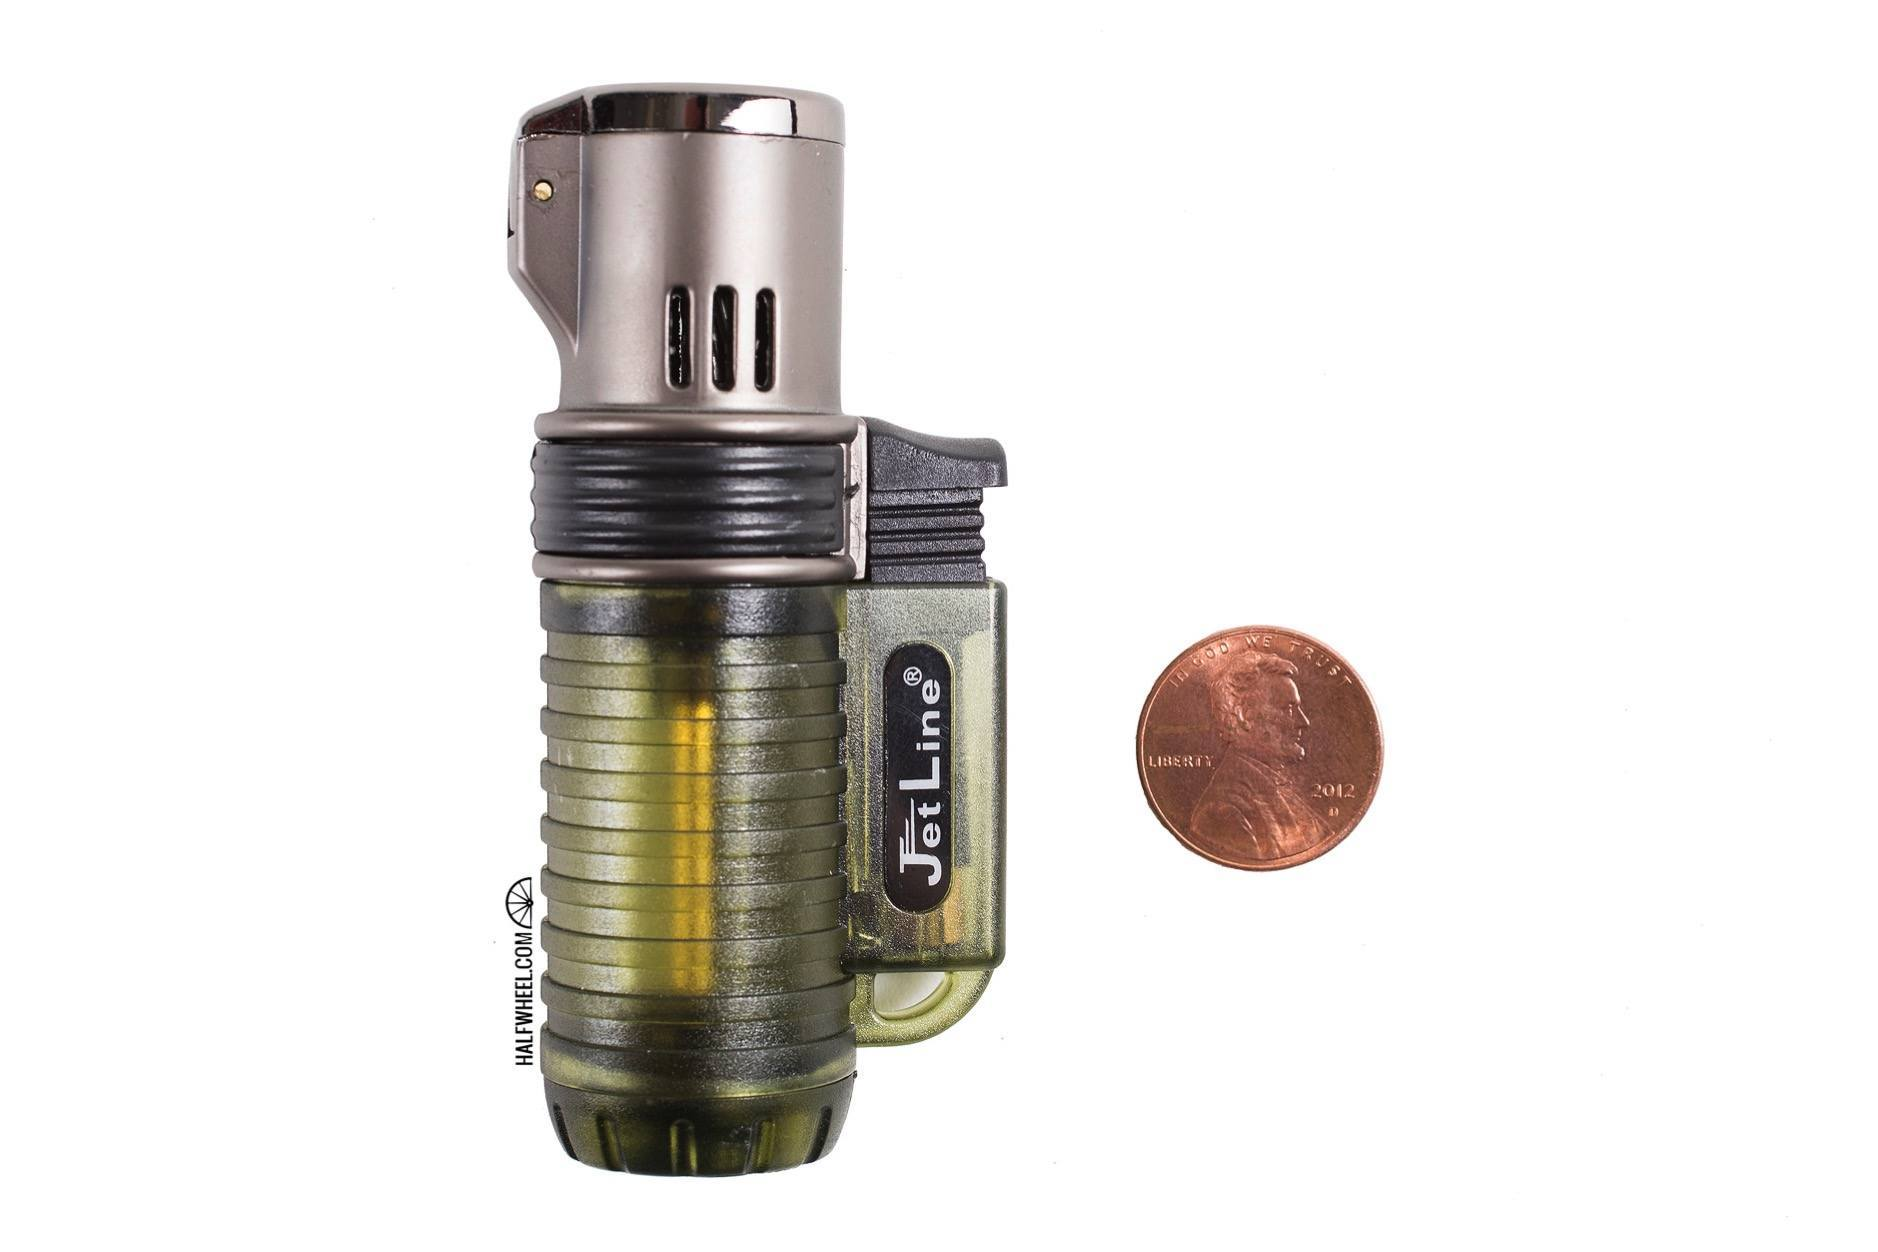 JetLine Single Flame Torch  2014 size